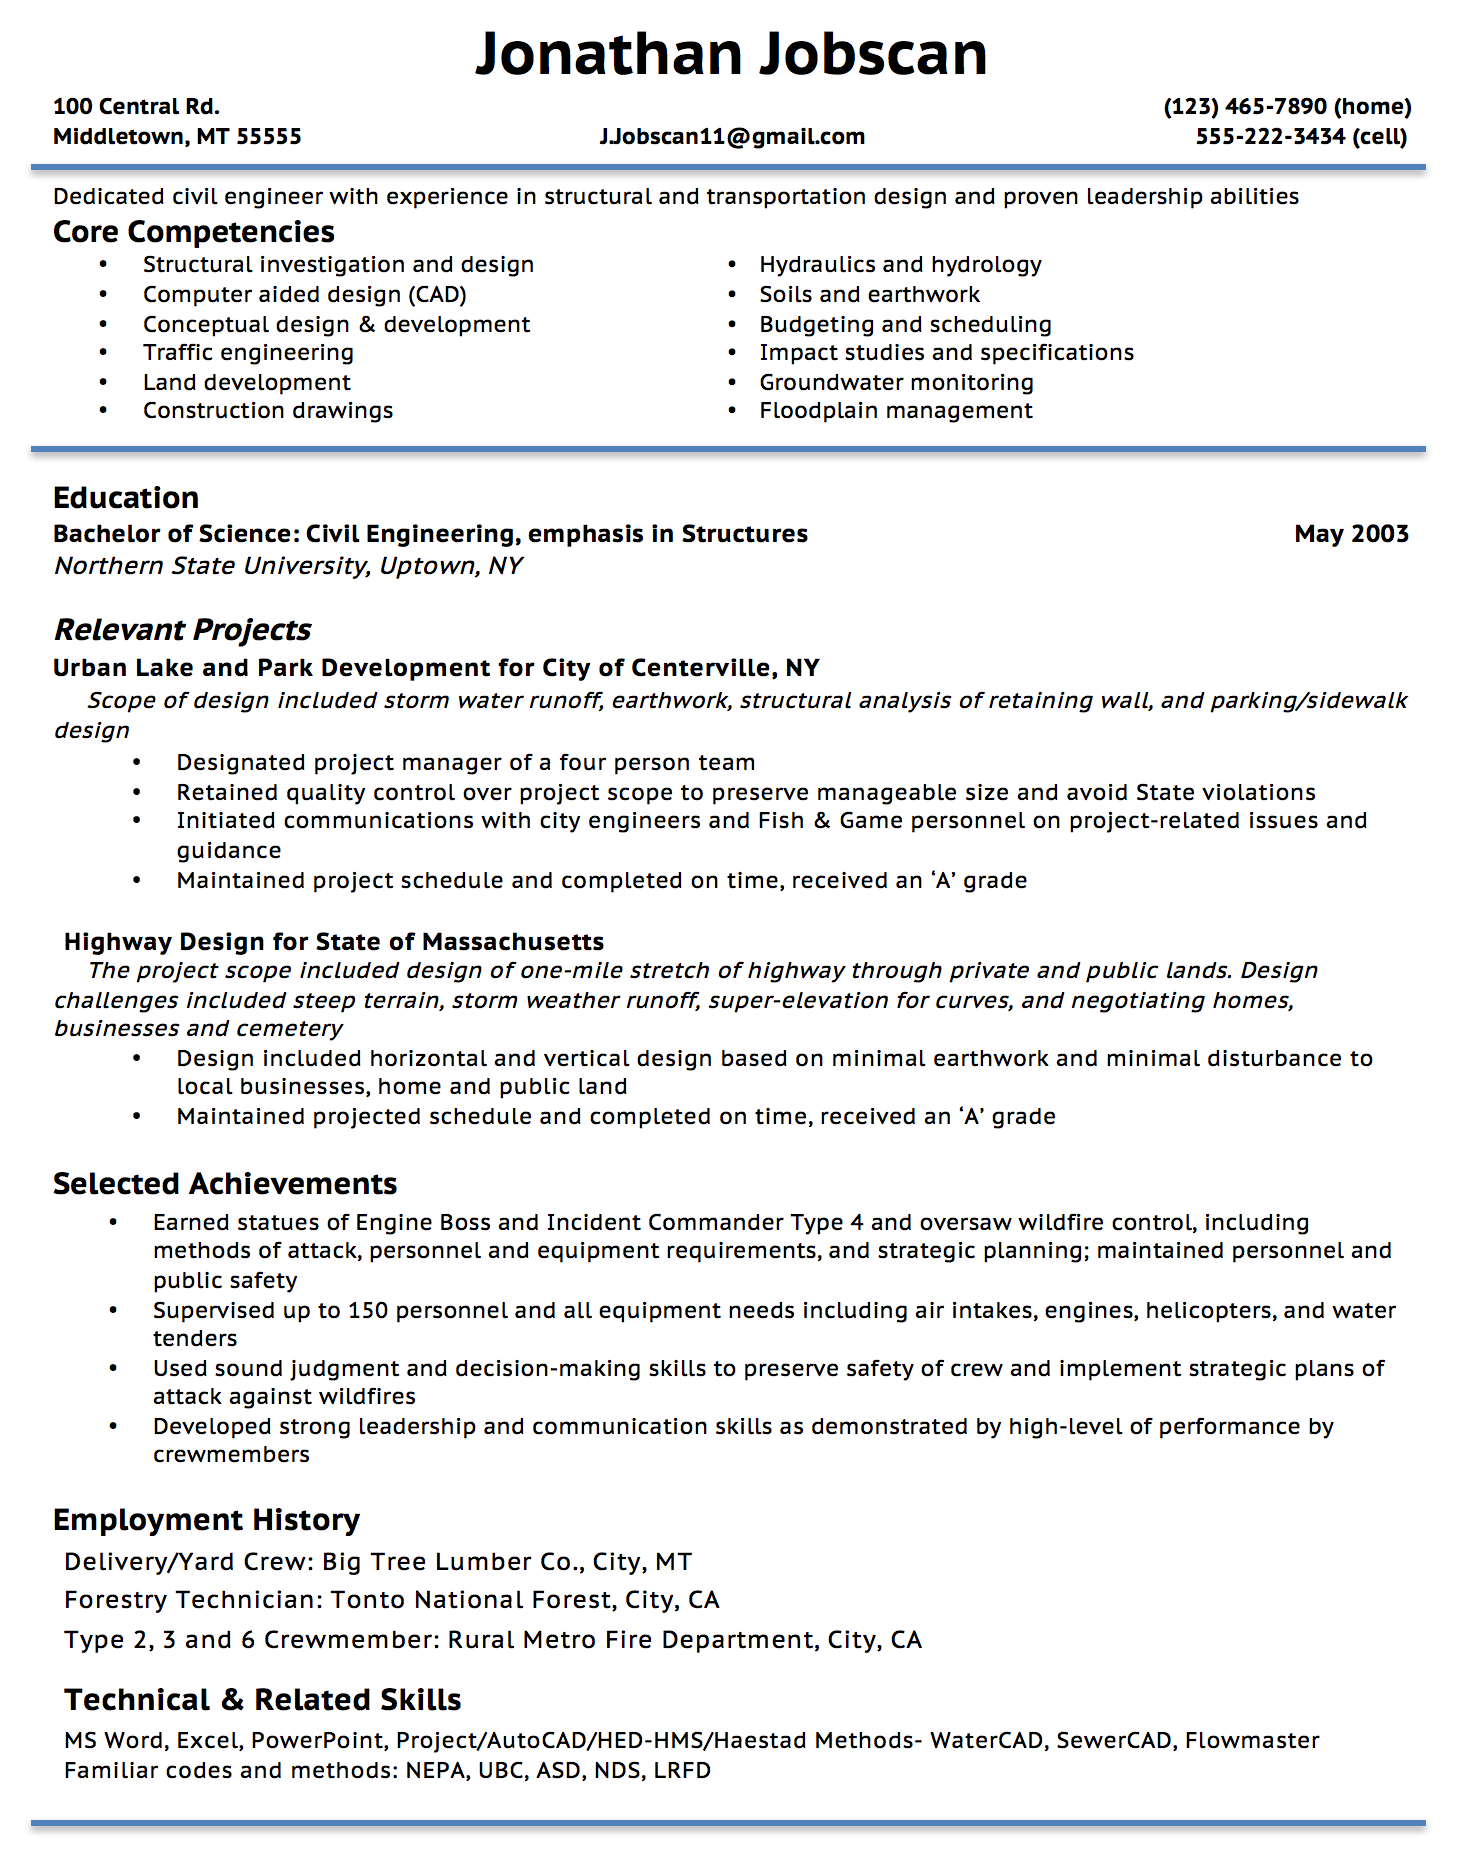 Opposenewapstandardsus  Mesmerizing Resume Writing Guide  Jobscan With Fetching Example Of A Functional Resume Format With Extraordinary Roofer Resume Also Excellent Resume Format In Addition Marketing Associate Resume And Computer Programming Resume As Well As How To Build My Resume Additionally Resume For Education From Jobscanco With Opposenewapstandardsus  Fetching Resume Writing Guide  Jobscan With Extraordinary Example Of A Functional Resume Format And Mesmerizing Roofer Resume Also Excellent Resume Format In Addition Marketing Associate Resume From Jobscanco